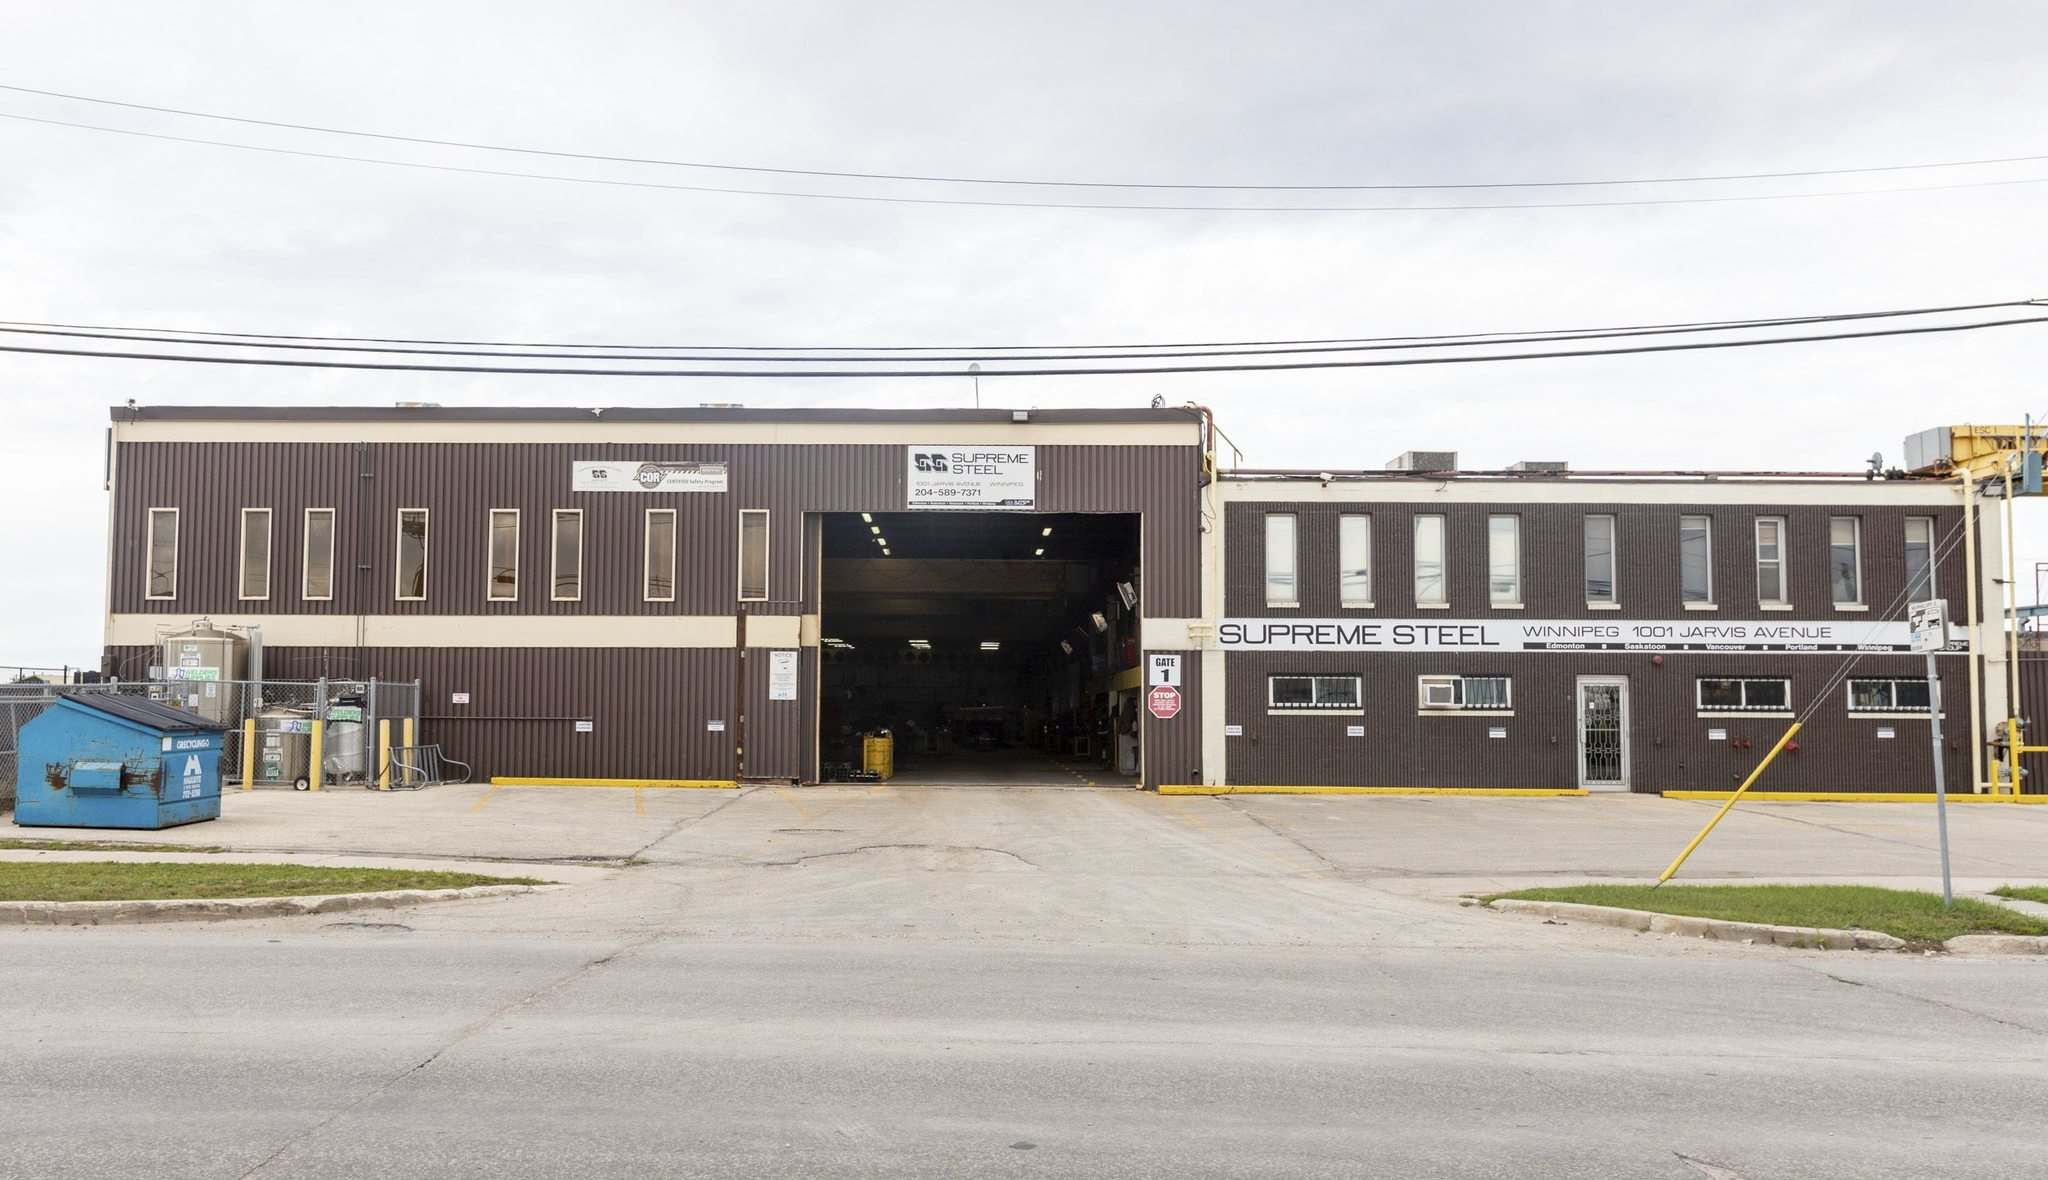 SASHA SEFTER / WINNIPEG FREE PRESS</p><p>Supreme Steel Winnipeg closes next month after 50 years in business and leaves 50 employees with uncertain futures. Kevin Guile, Supreme Group of Companies president, says the company will do all it can to help the workers.</p></p>